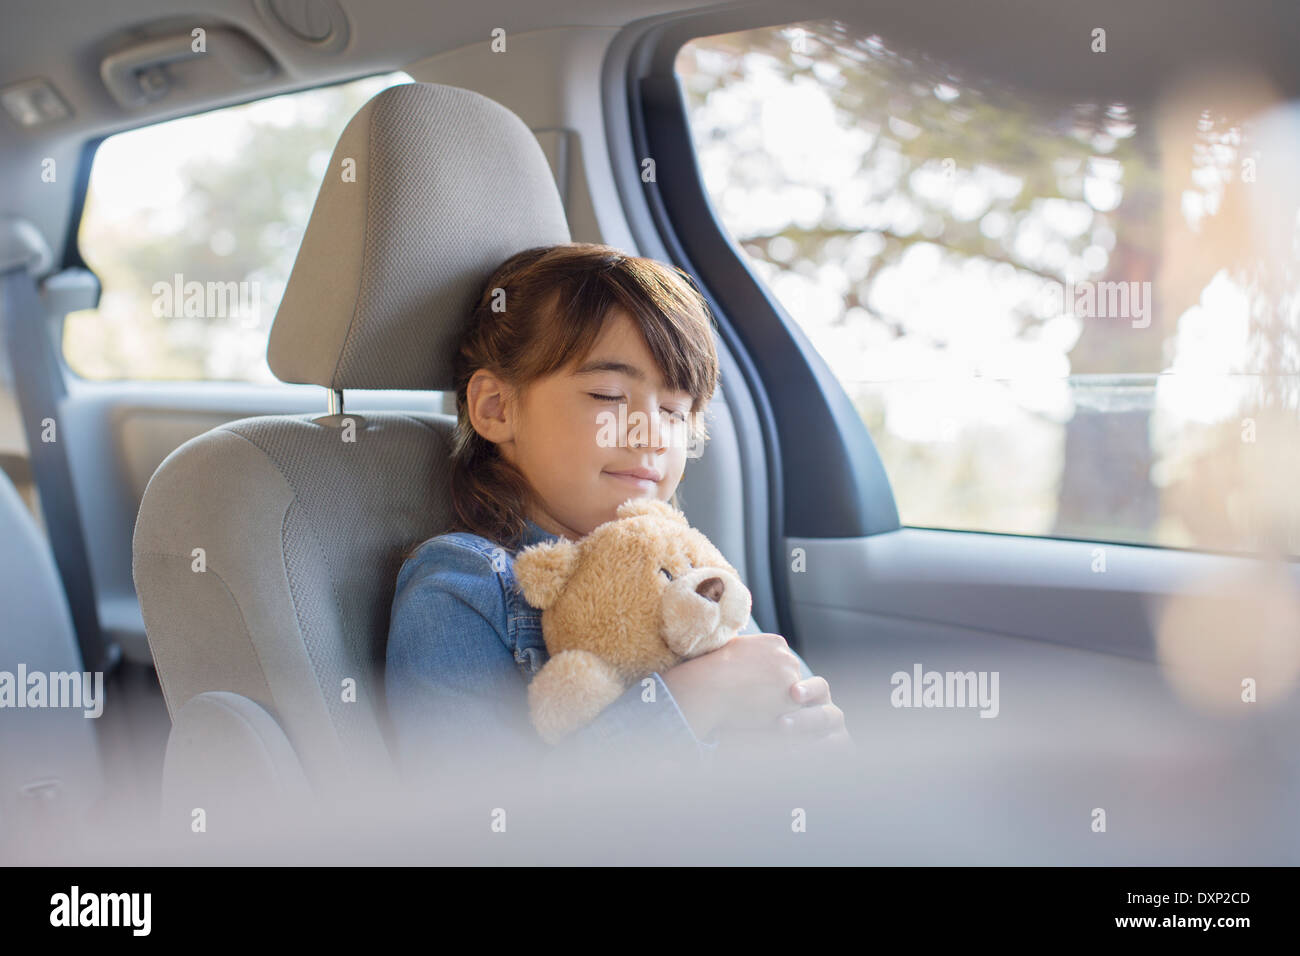 Girl with teddy bear sleeping in back seat of car - Stock Image